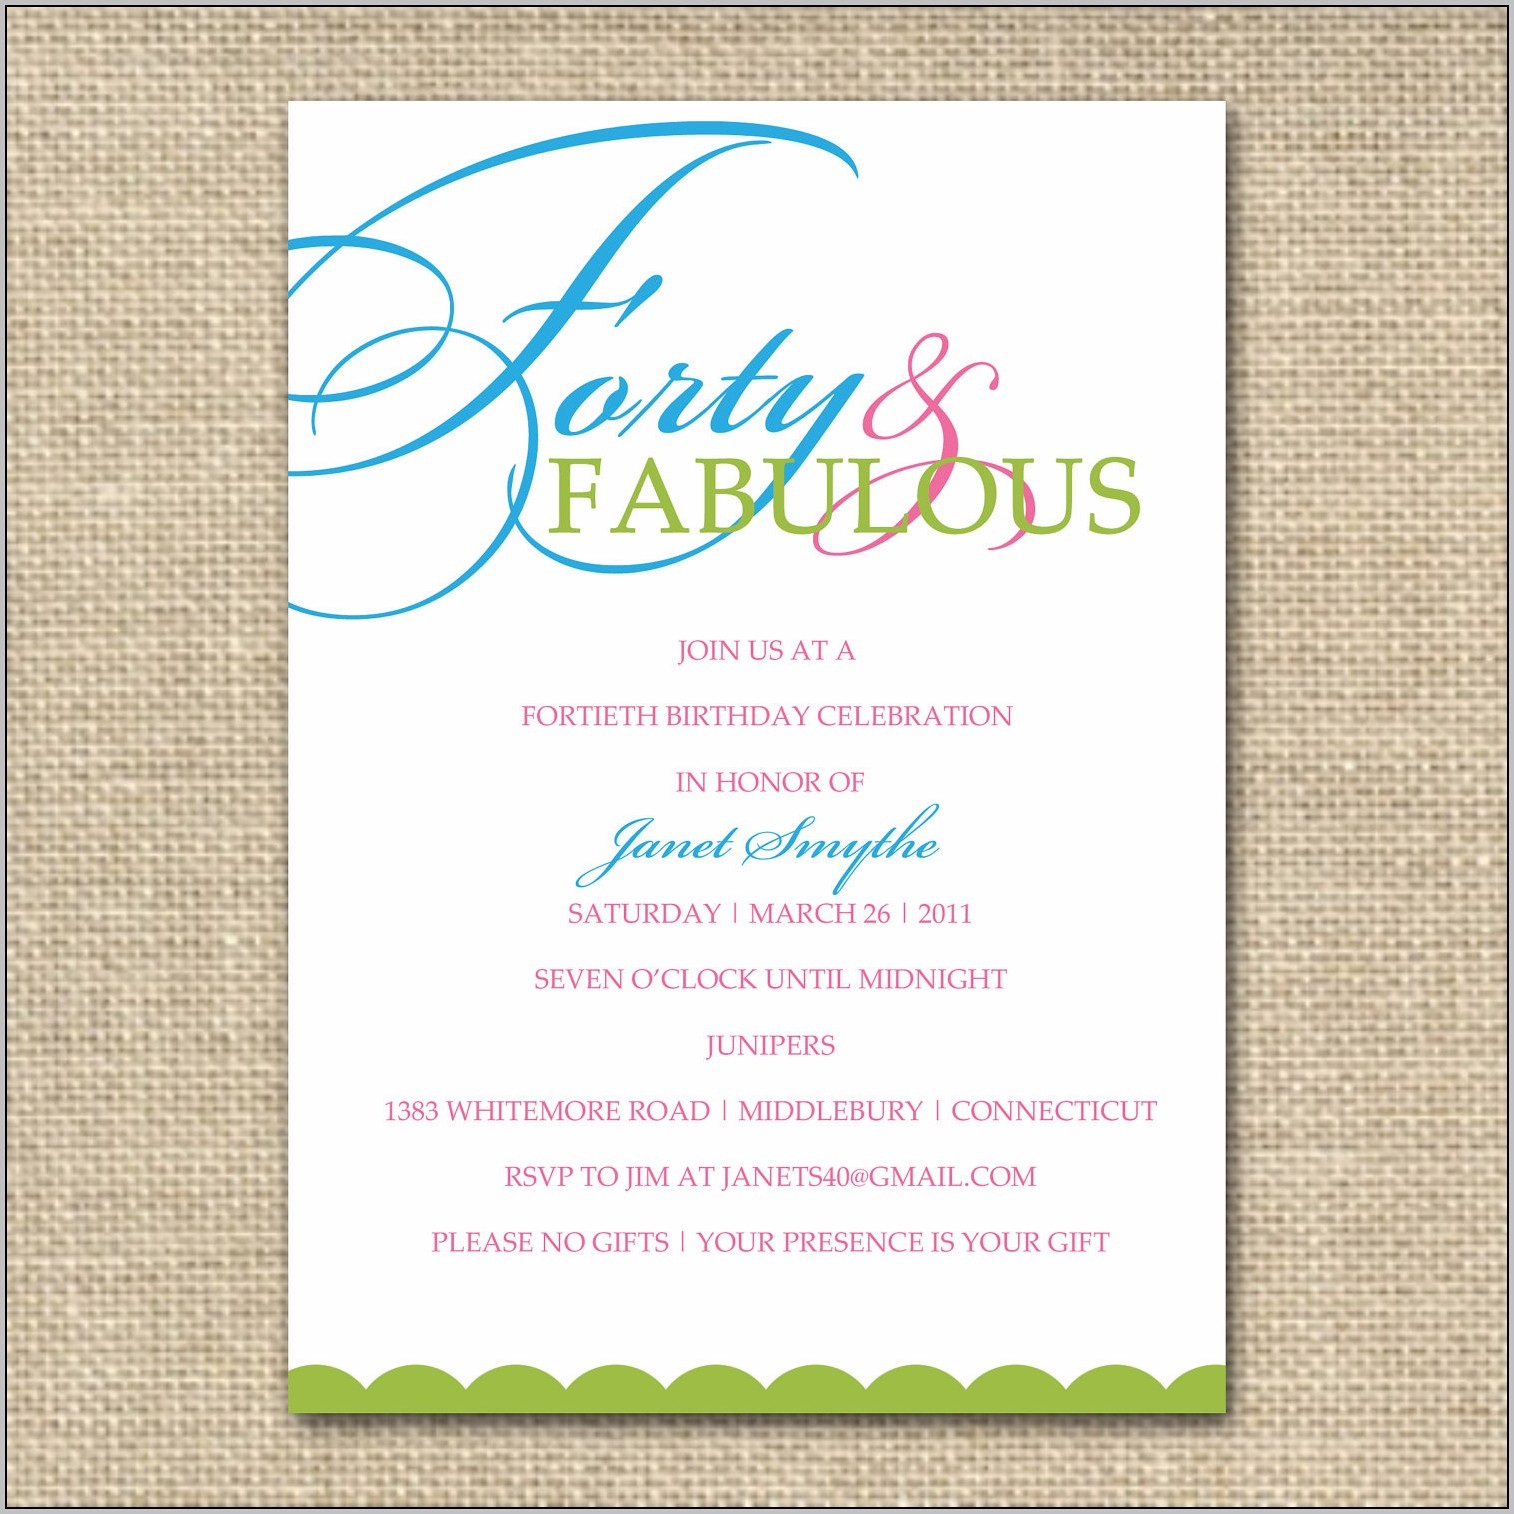 Birthday Invitation Maker Online Free Printable